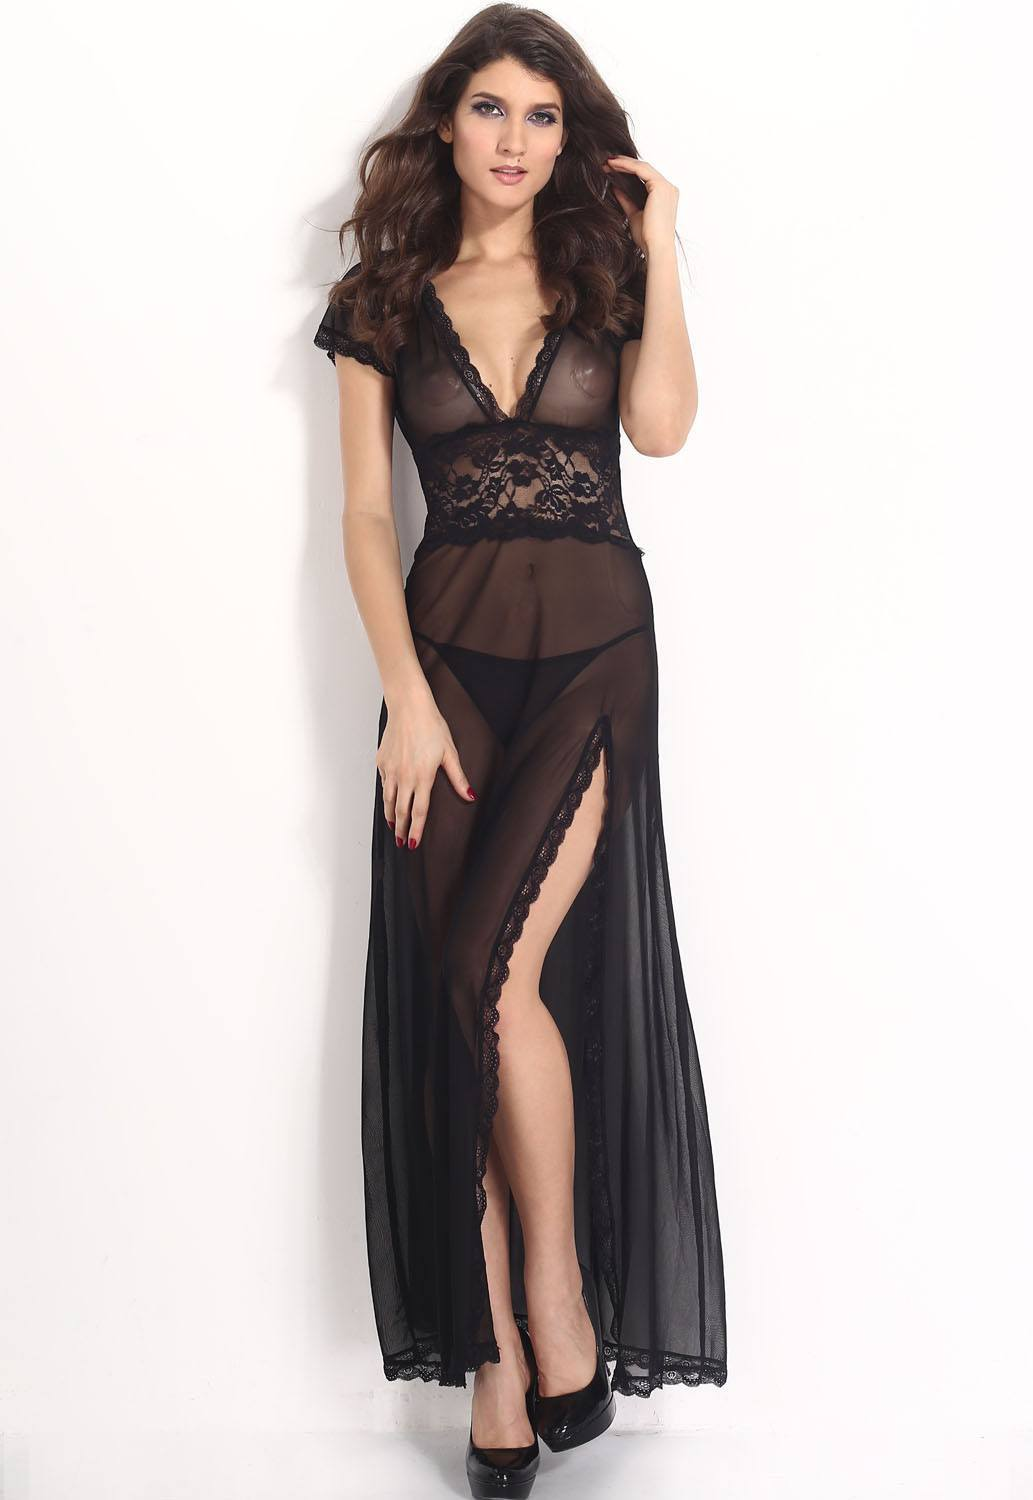 Black Mesh and Lace V Neck Lingerie Gown - Ninostyle